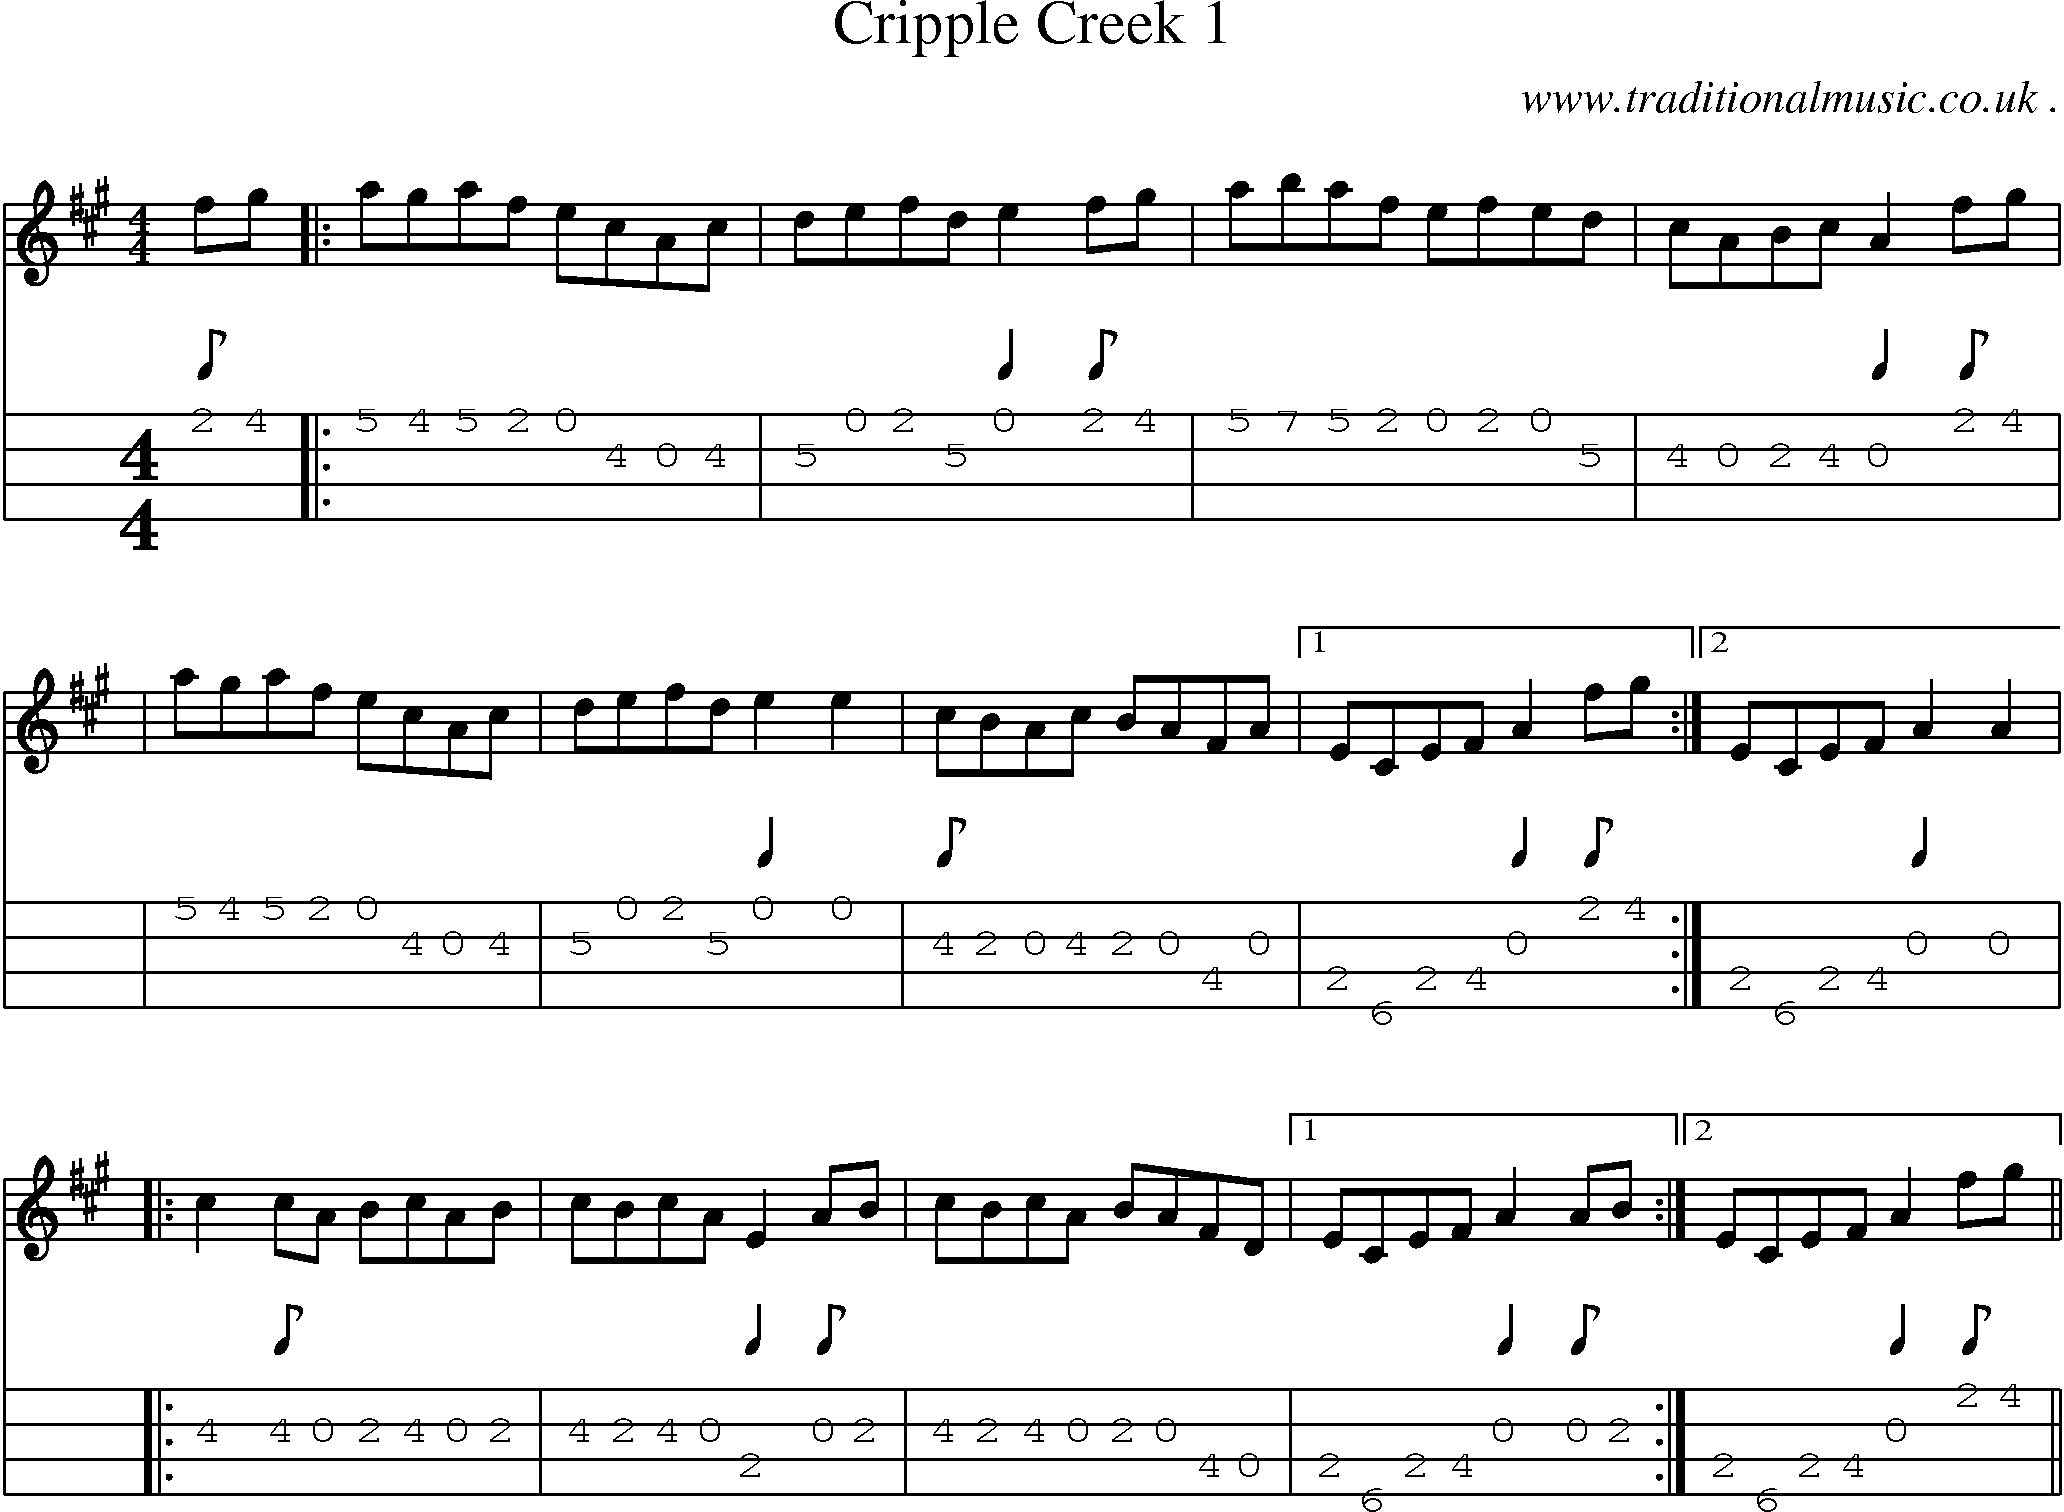 American Old-time music, Scores and Tabs for Mandolin - Cripple Creek 1